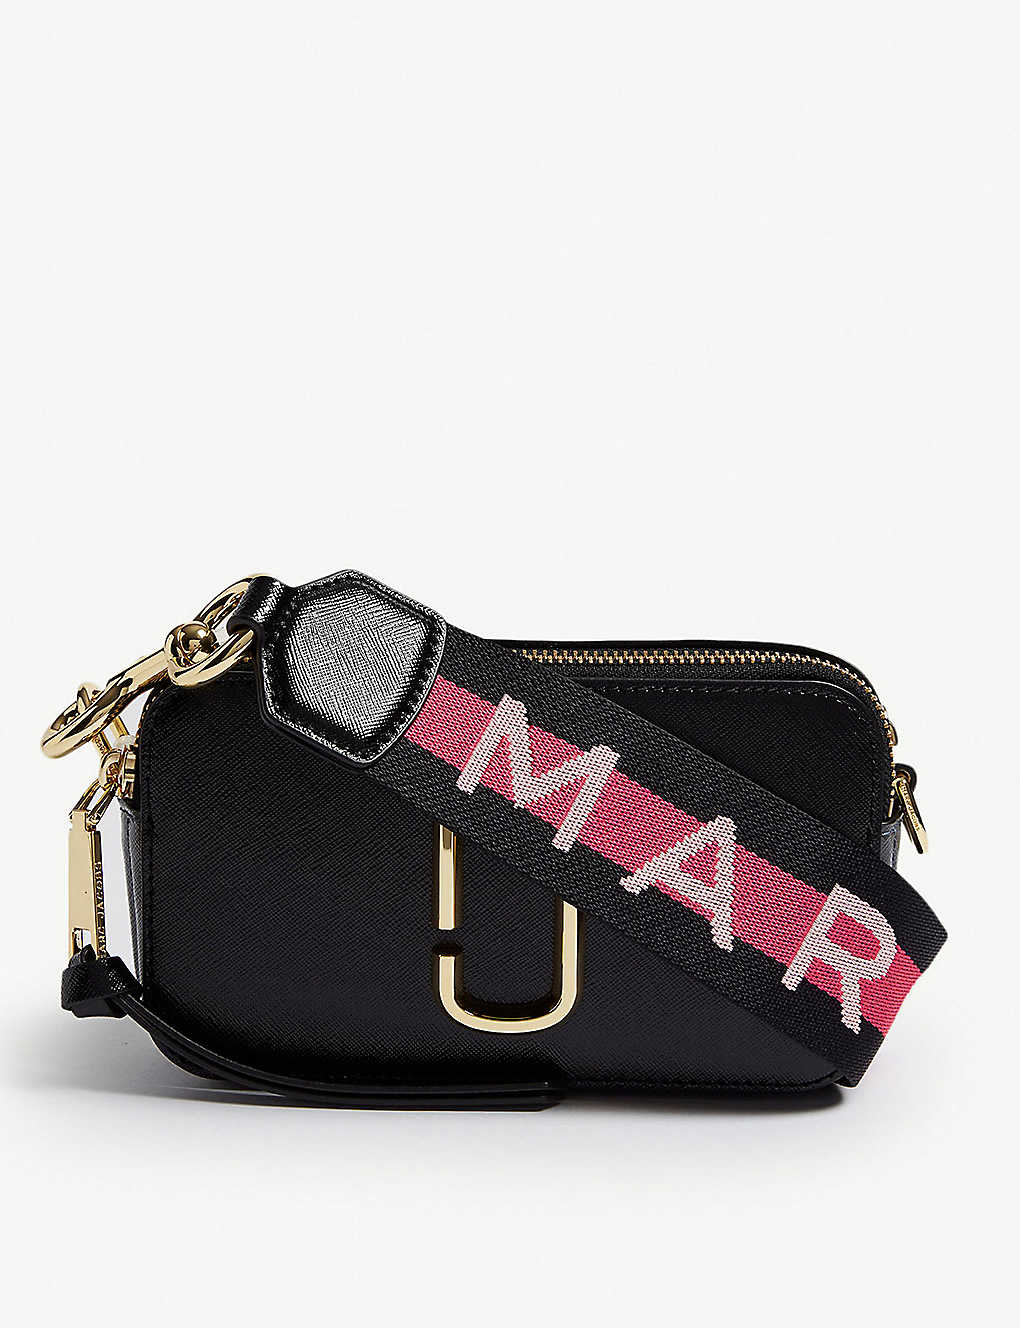 a5d644e3eaa4 MARC JACOBS - Snapshot cross-body wallet